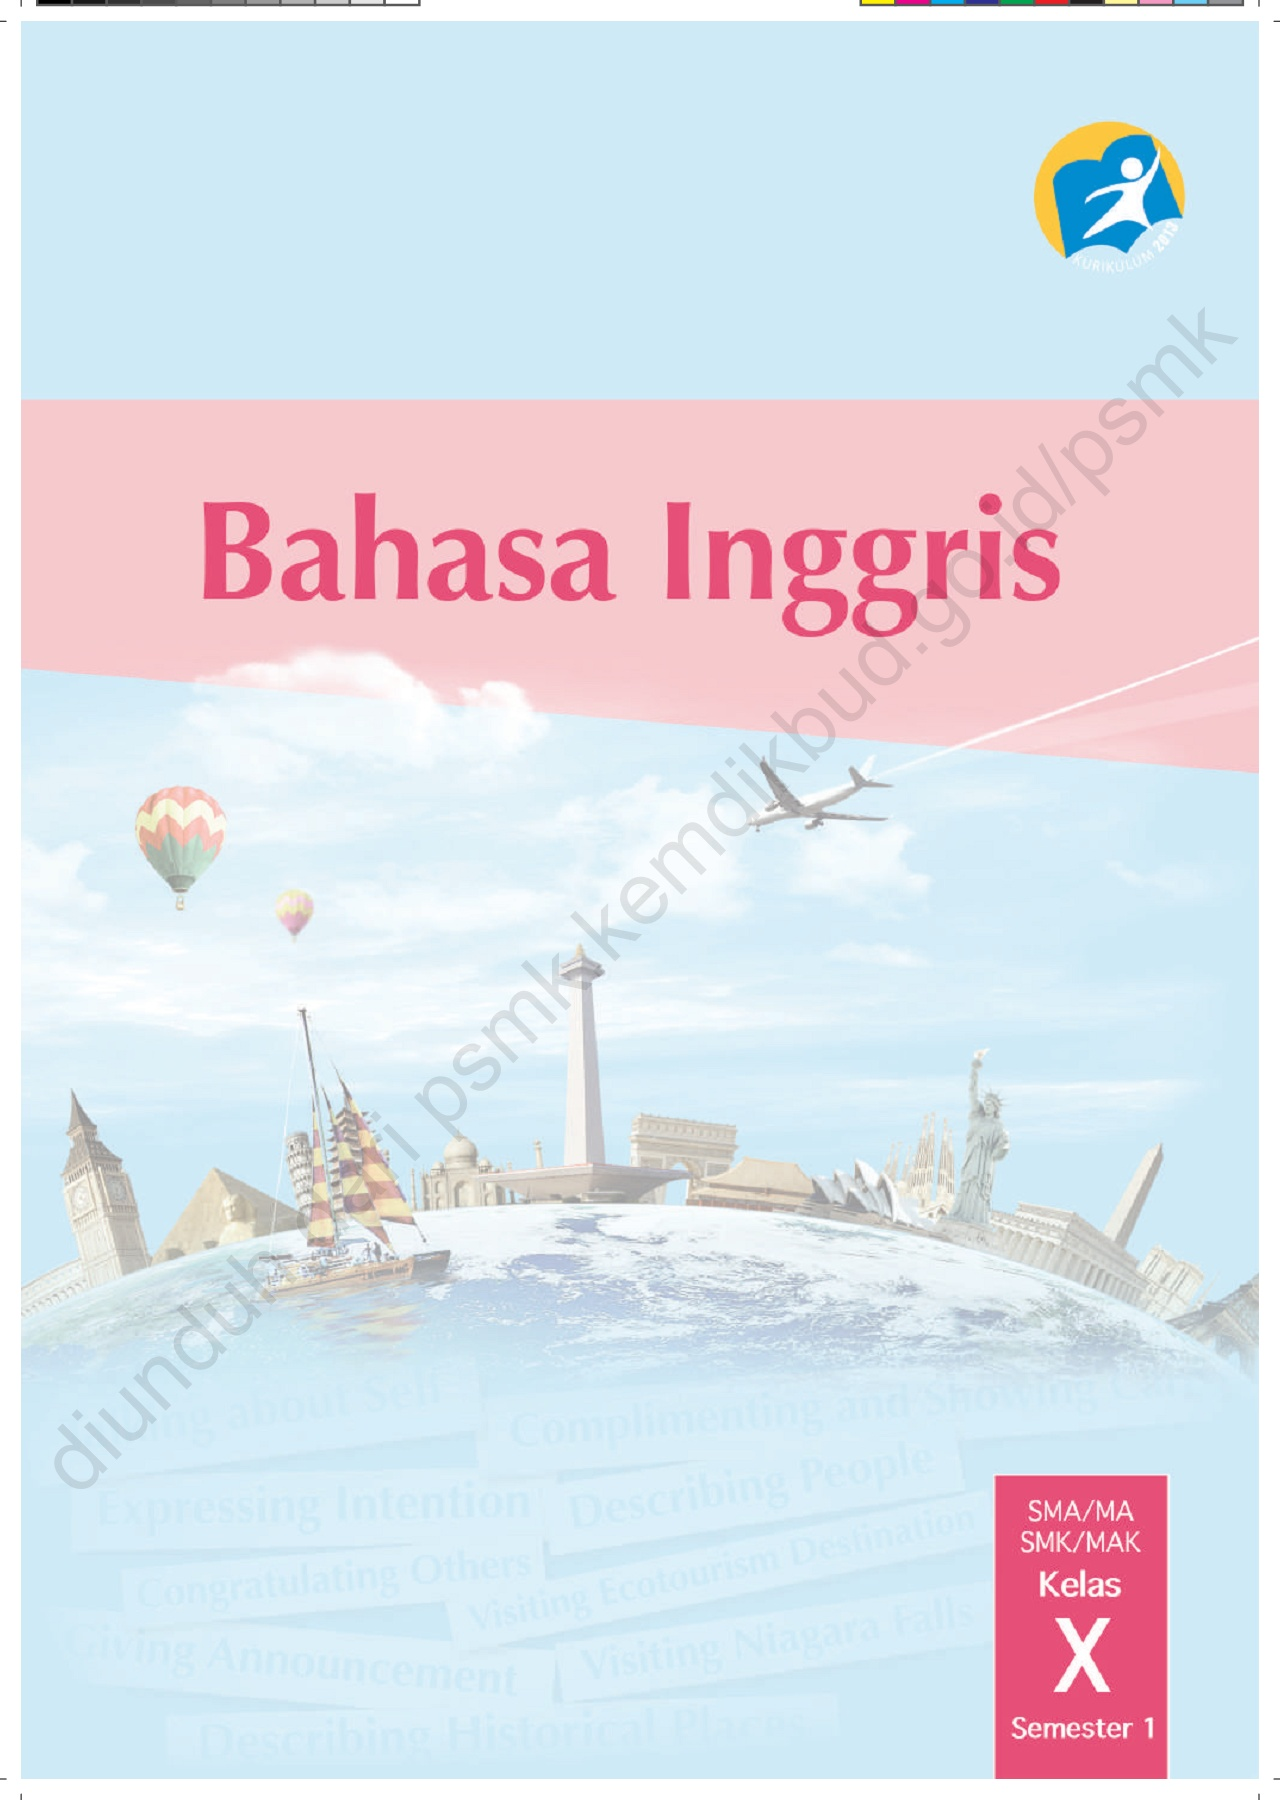 Bahasa Inggris 1-50 : bahasa, inggris, Bahasa-Inggris-Kelas-X-Flip, EBook, Pages, AnyFlip